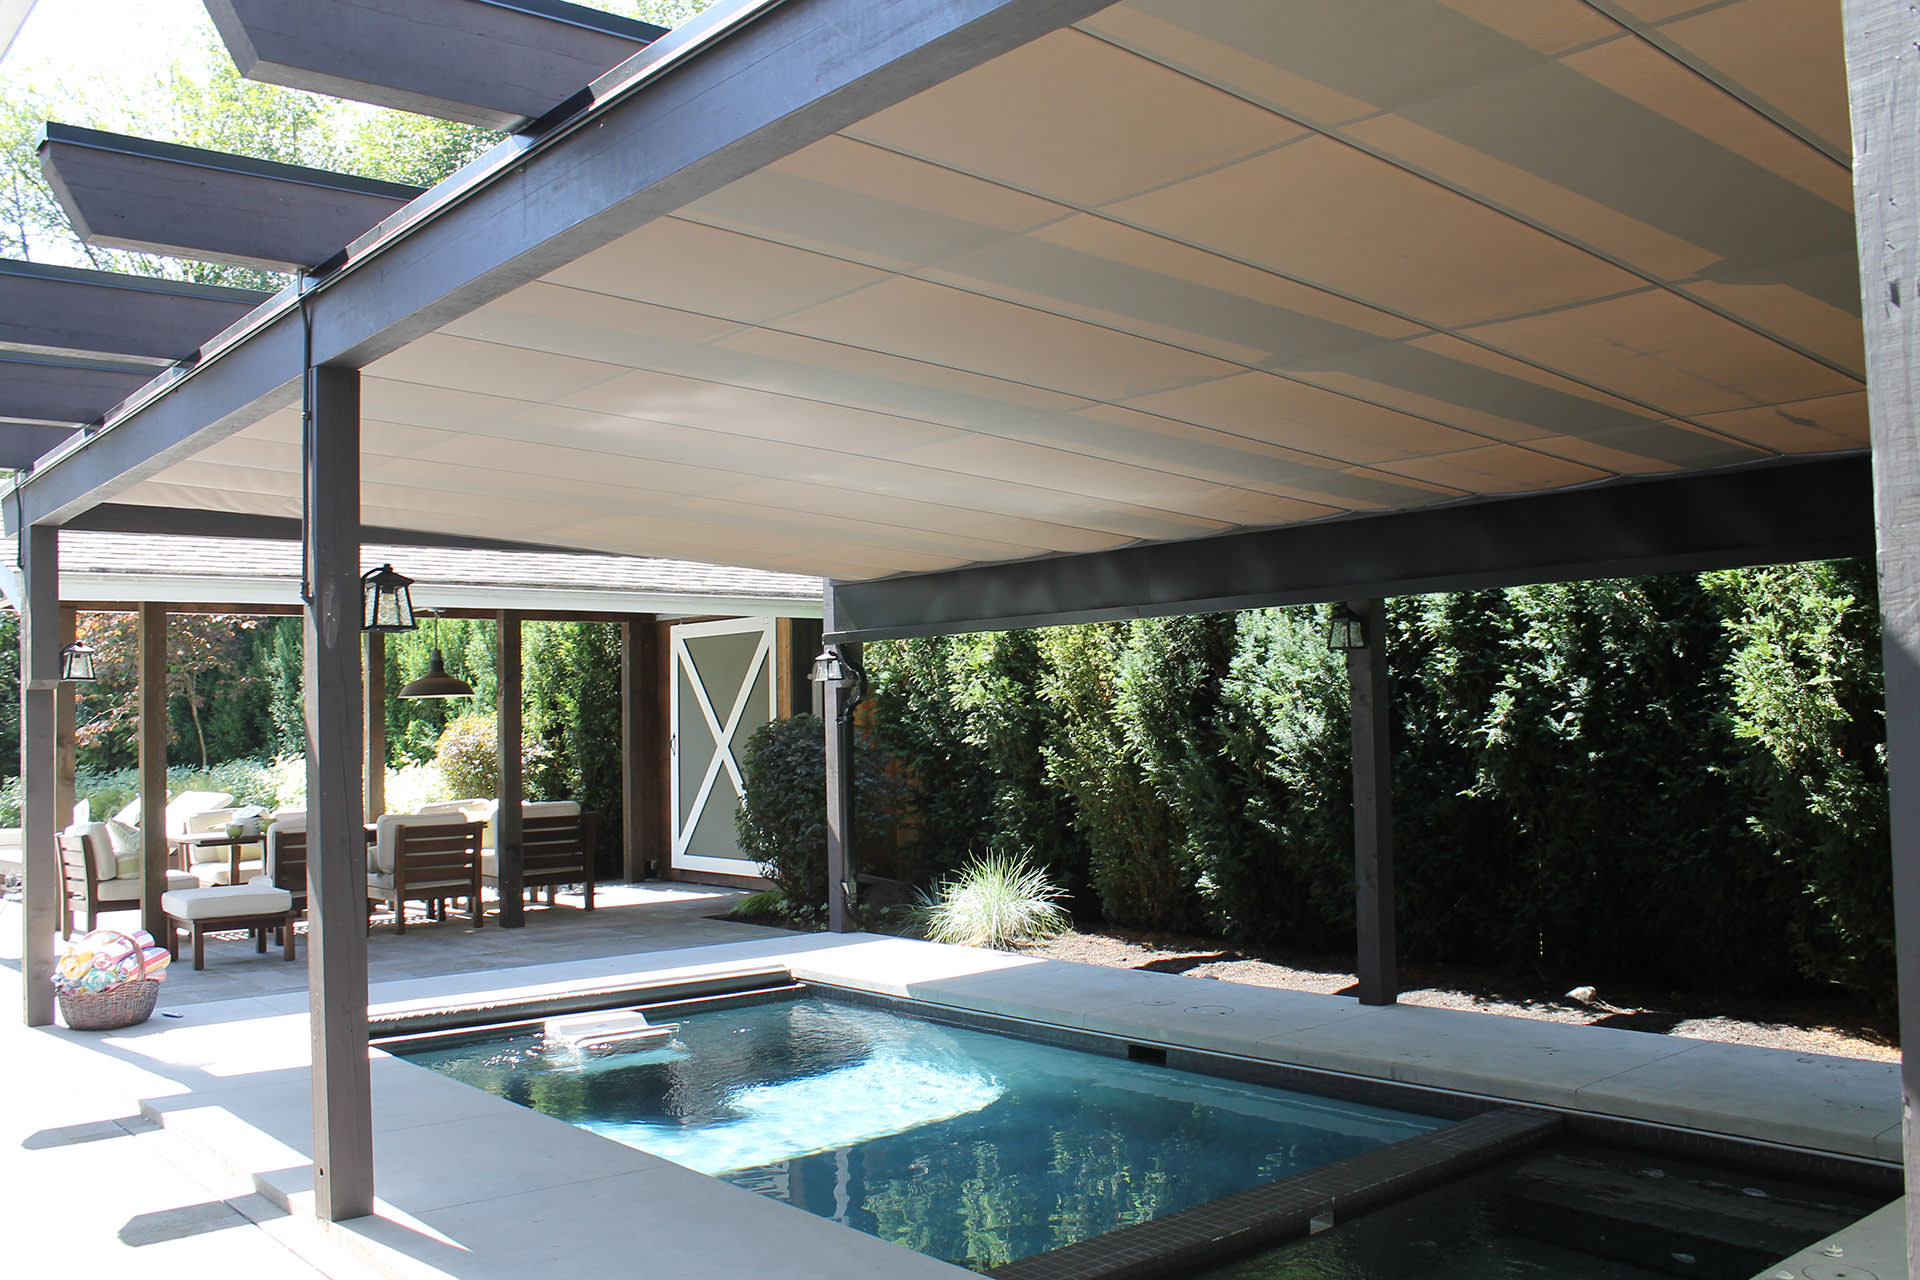 Retractable Pool Cover, Vancouver | ShadeFX Canopies